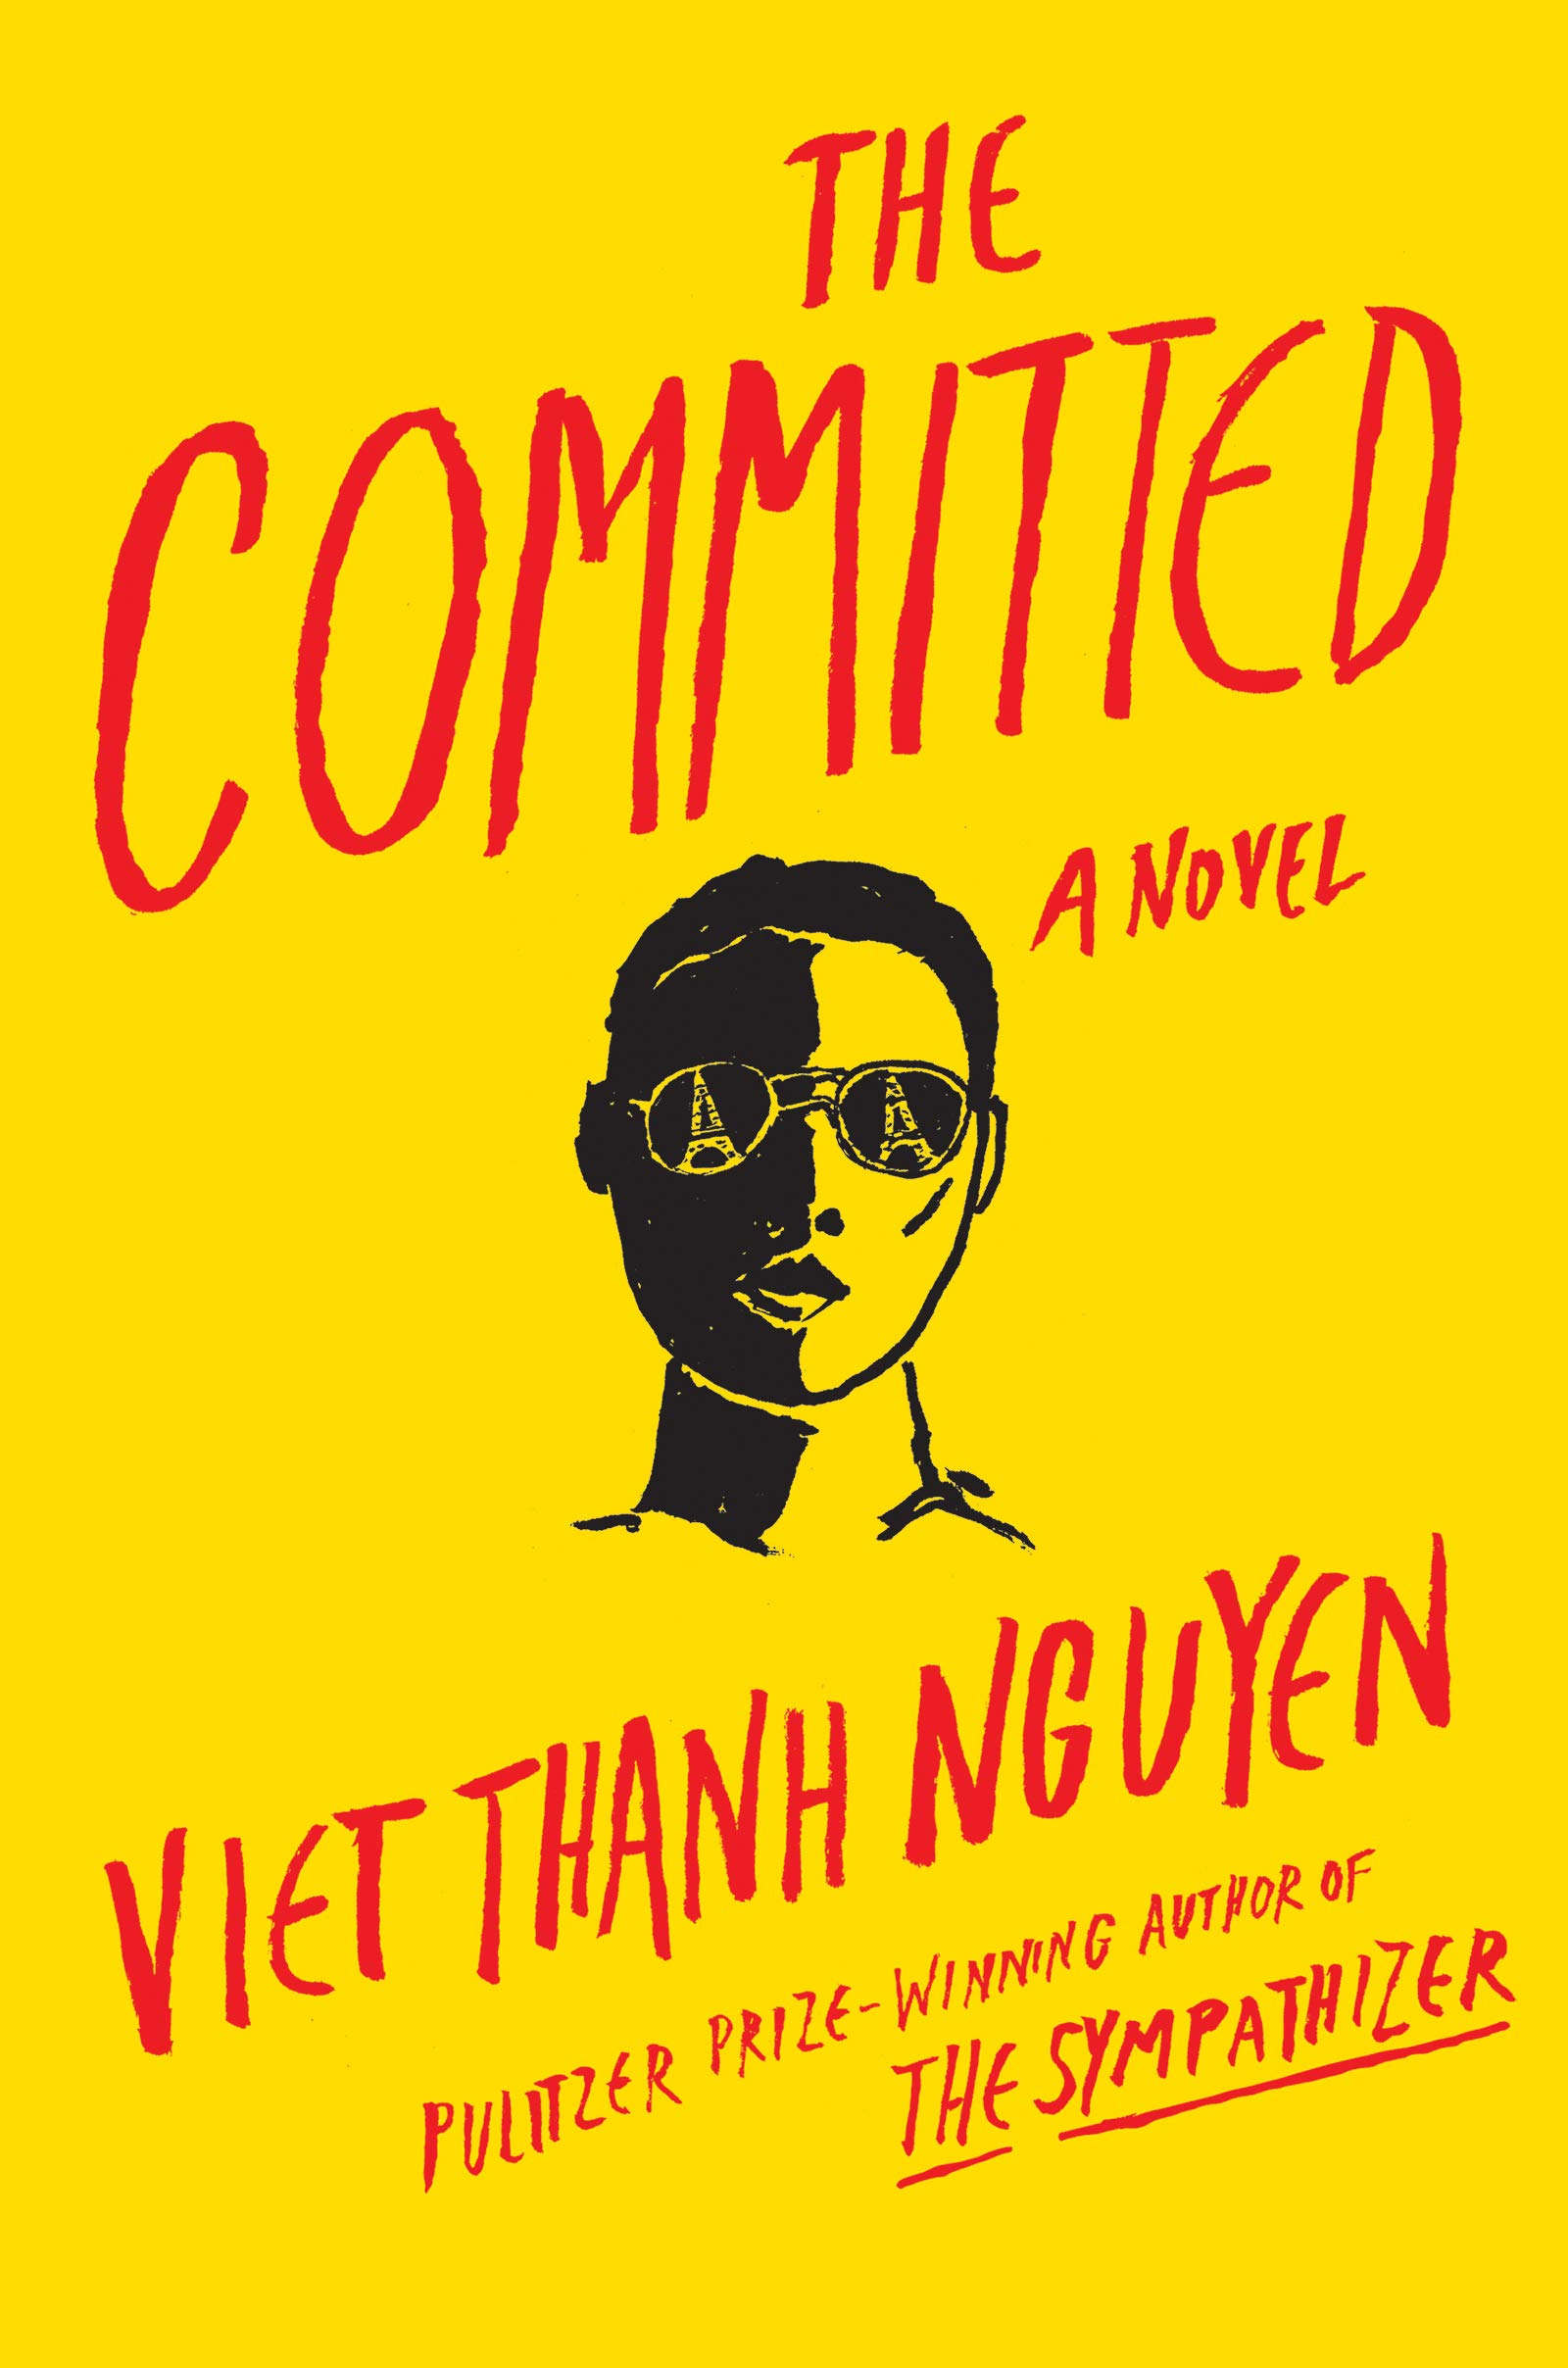 Amazon.com: The Committed (9780802157065): Nguyen, Viet Thanh: Books